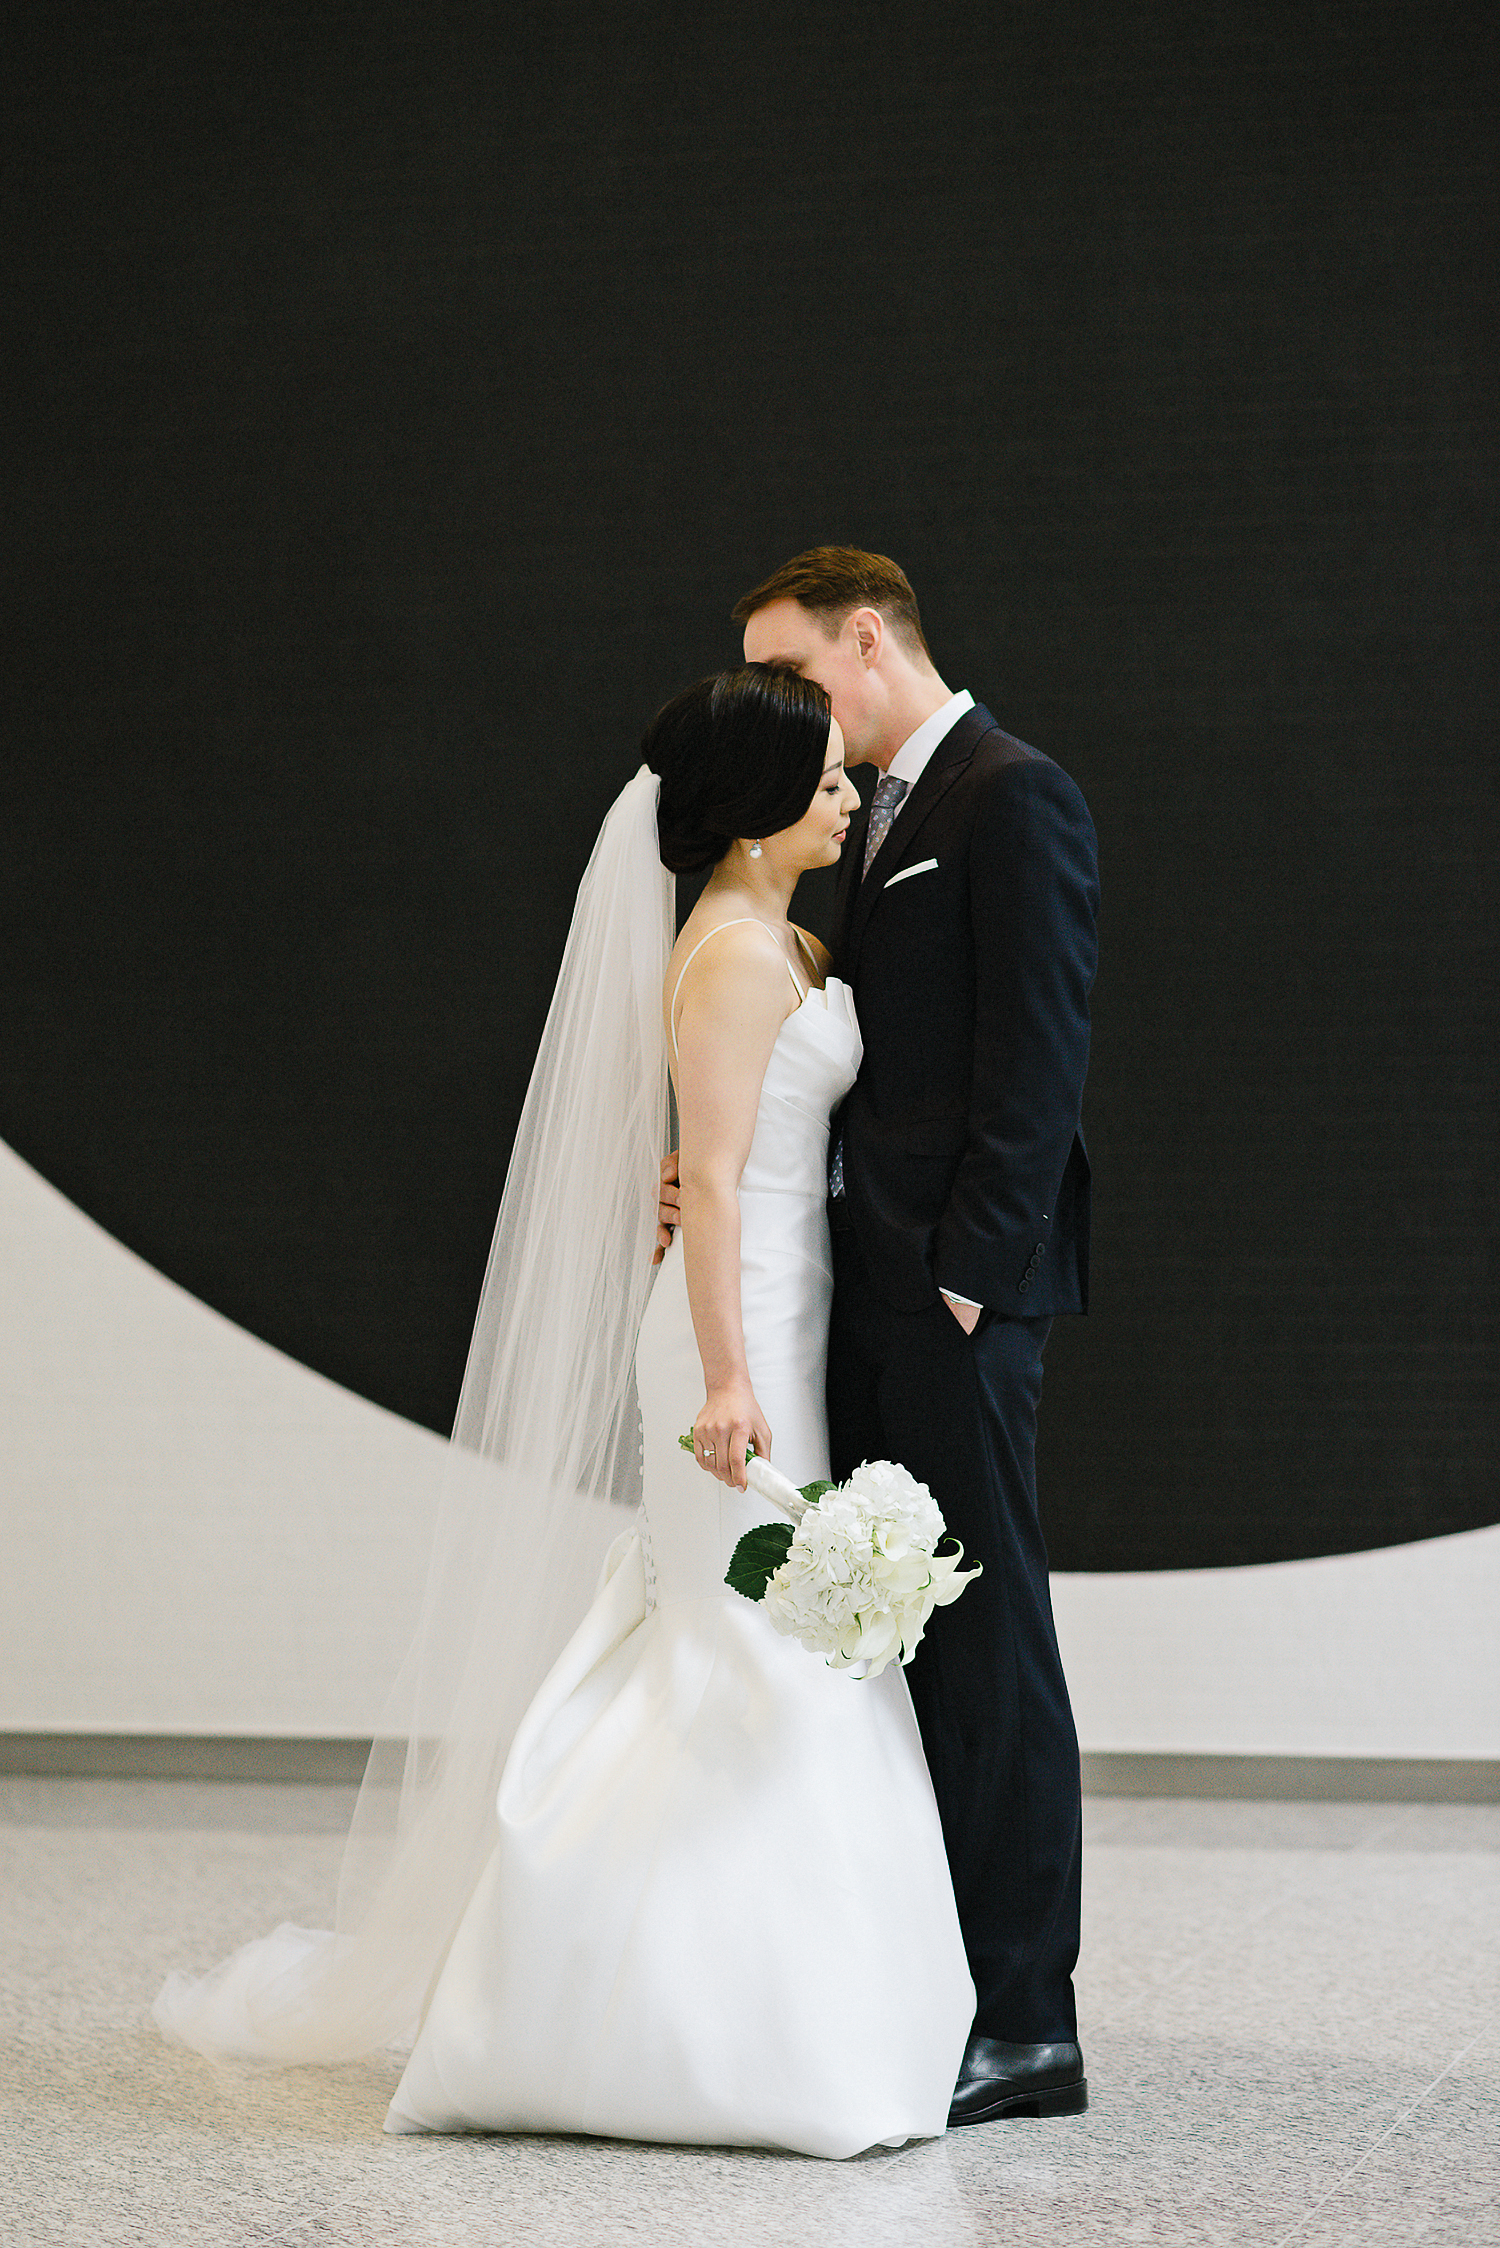 Best-Wedding-Photographers-Toronto_-Urban-City-Wedding-Photography-Downtown-Toronto-Photographer_Vintage-Bride-and-Groom-Details_The-Chase-Wedding-Venue_Candid-Photojournalistic-Documentary-Beautiful-Bride-and-groom-candid-moment.jpg